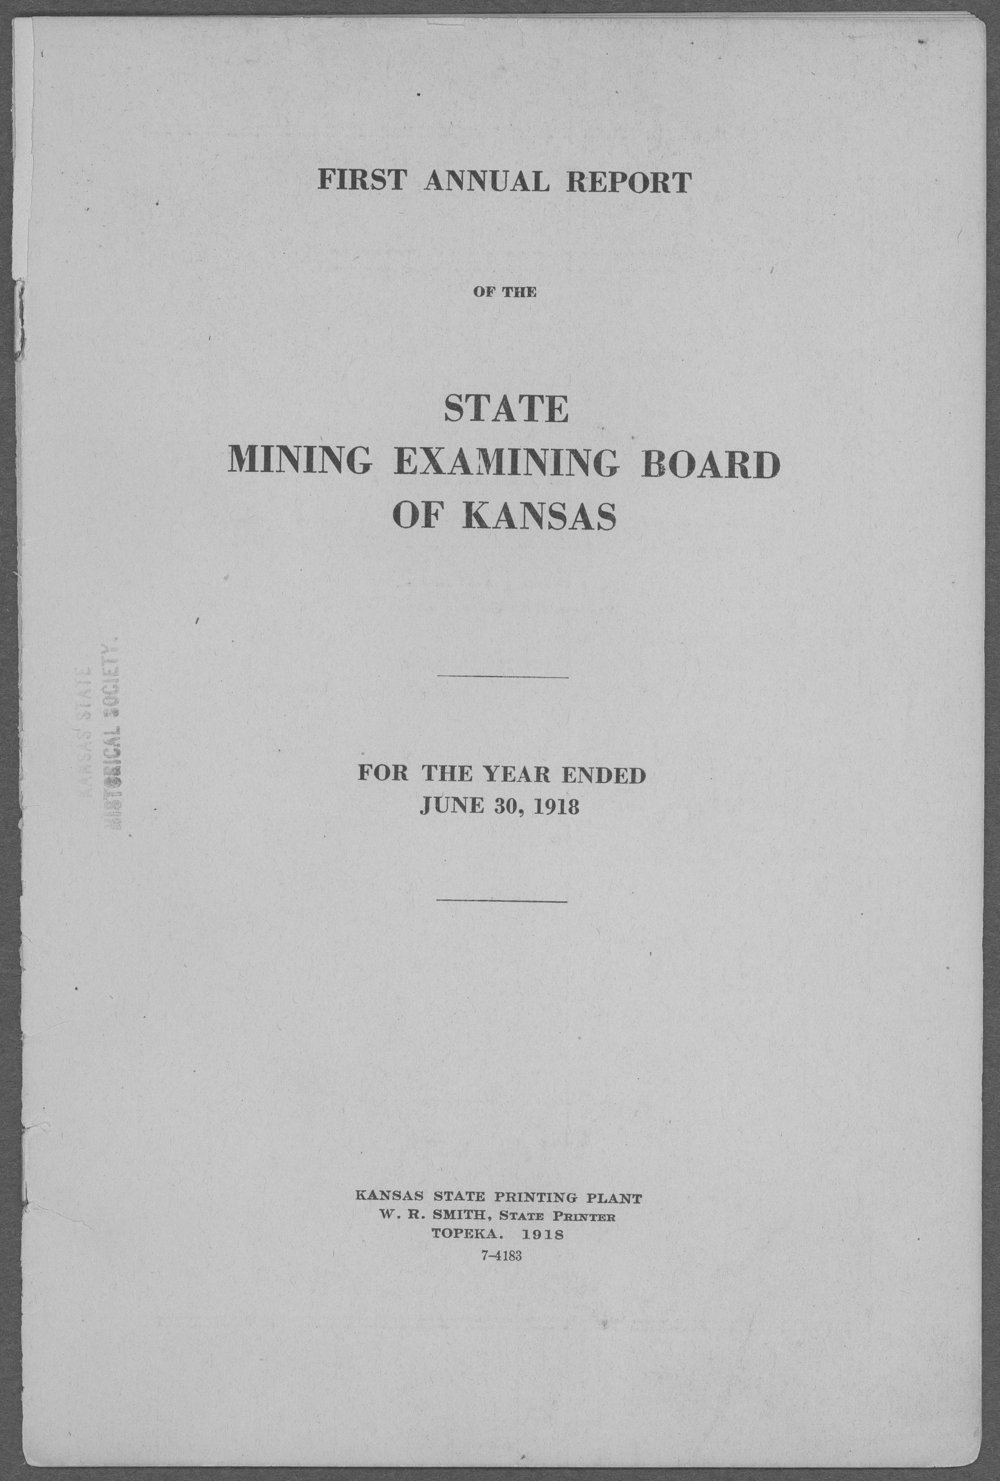 First Annual Report of the State Mining Examining Board of Kansas - 1